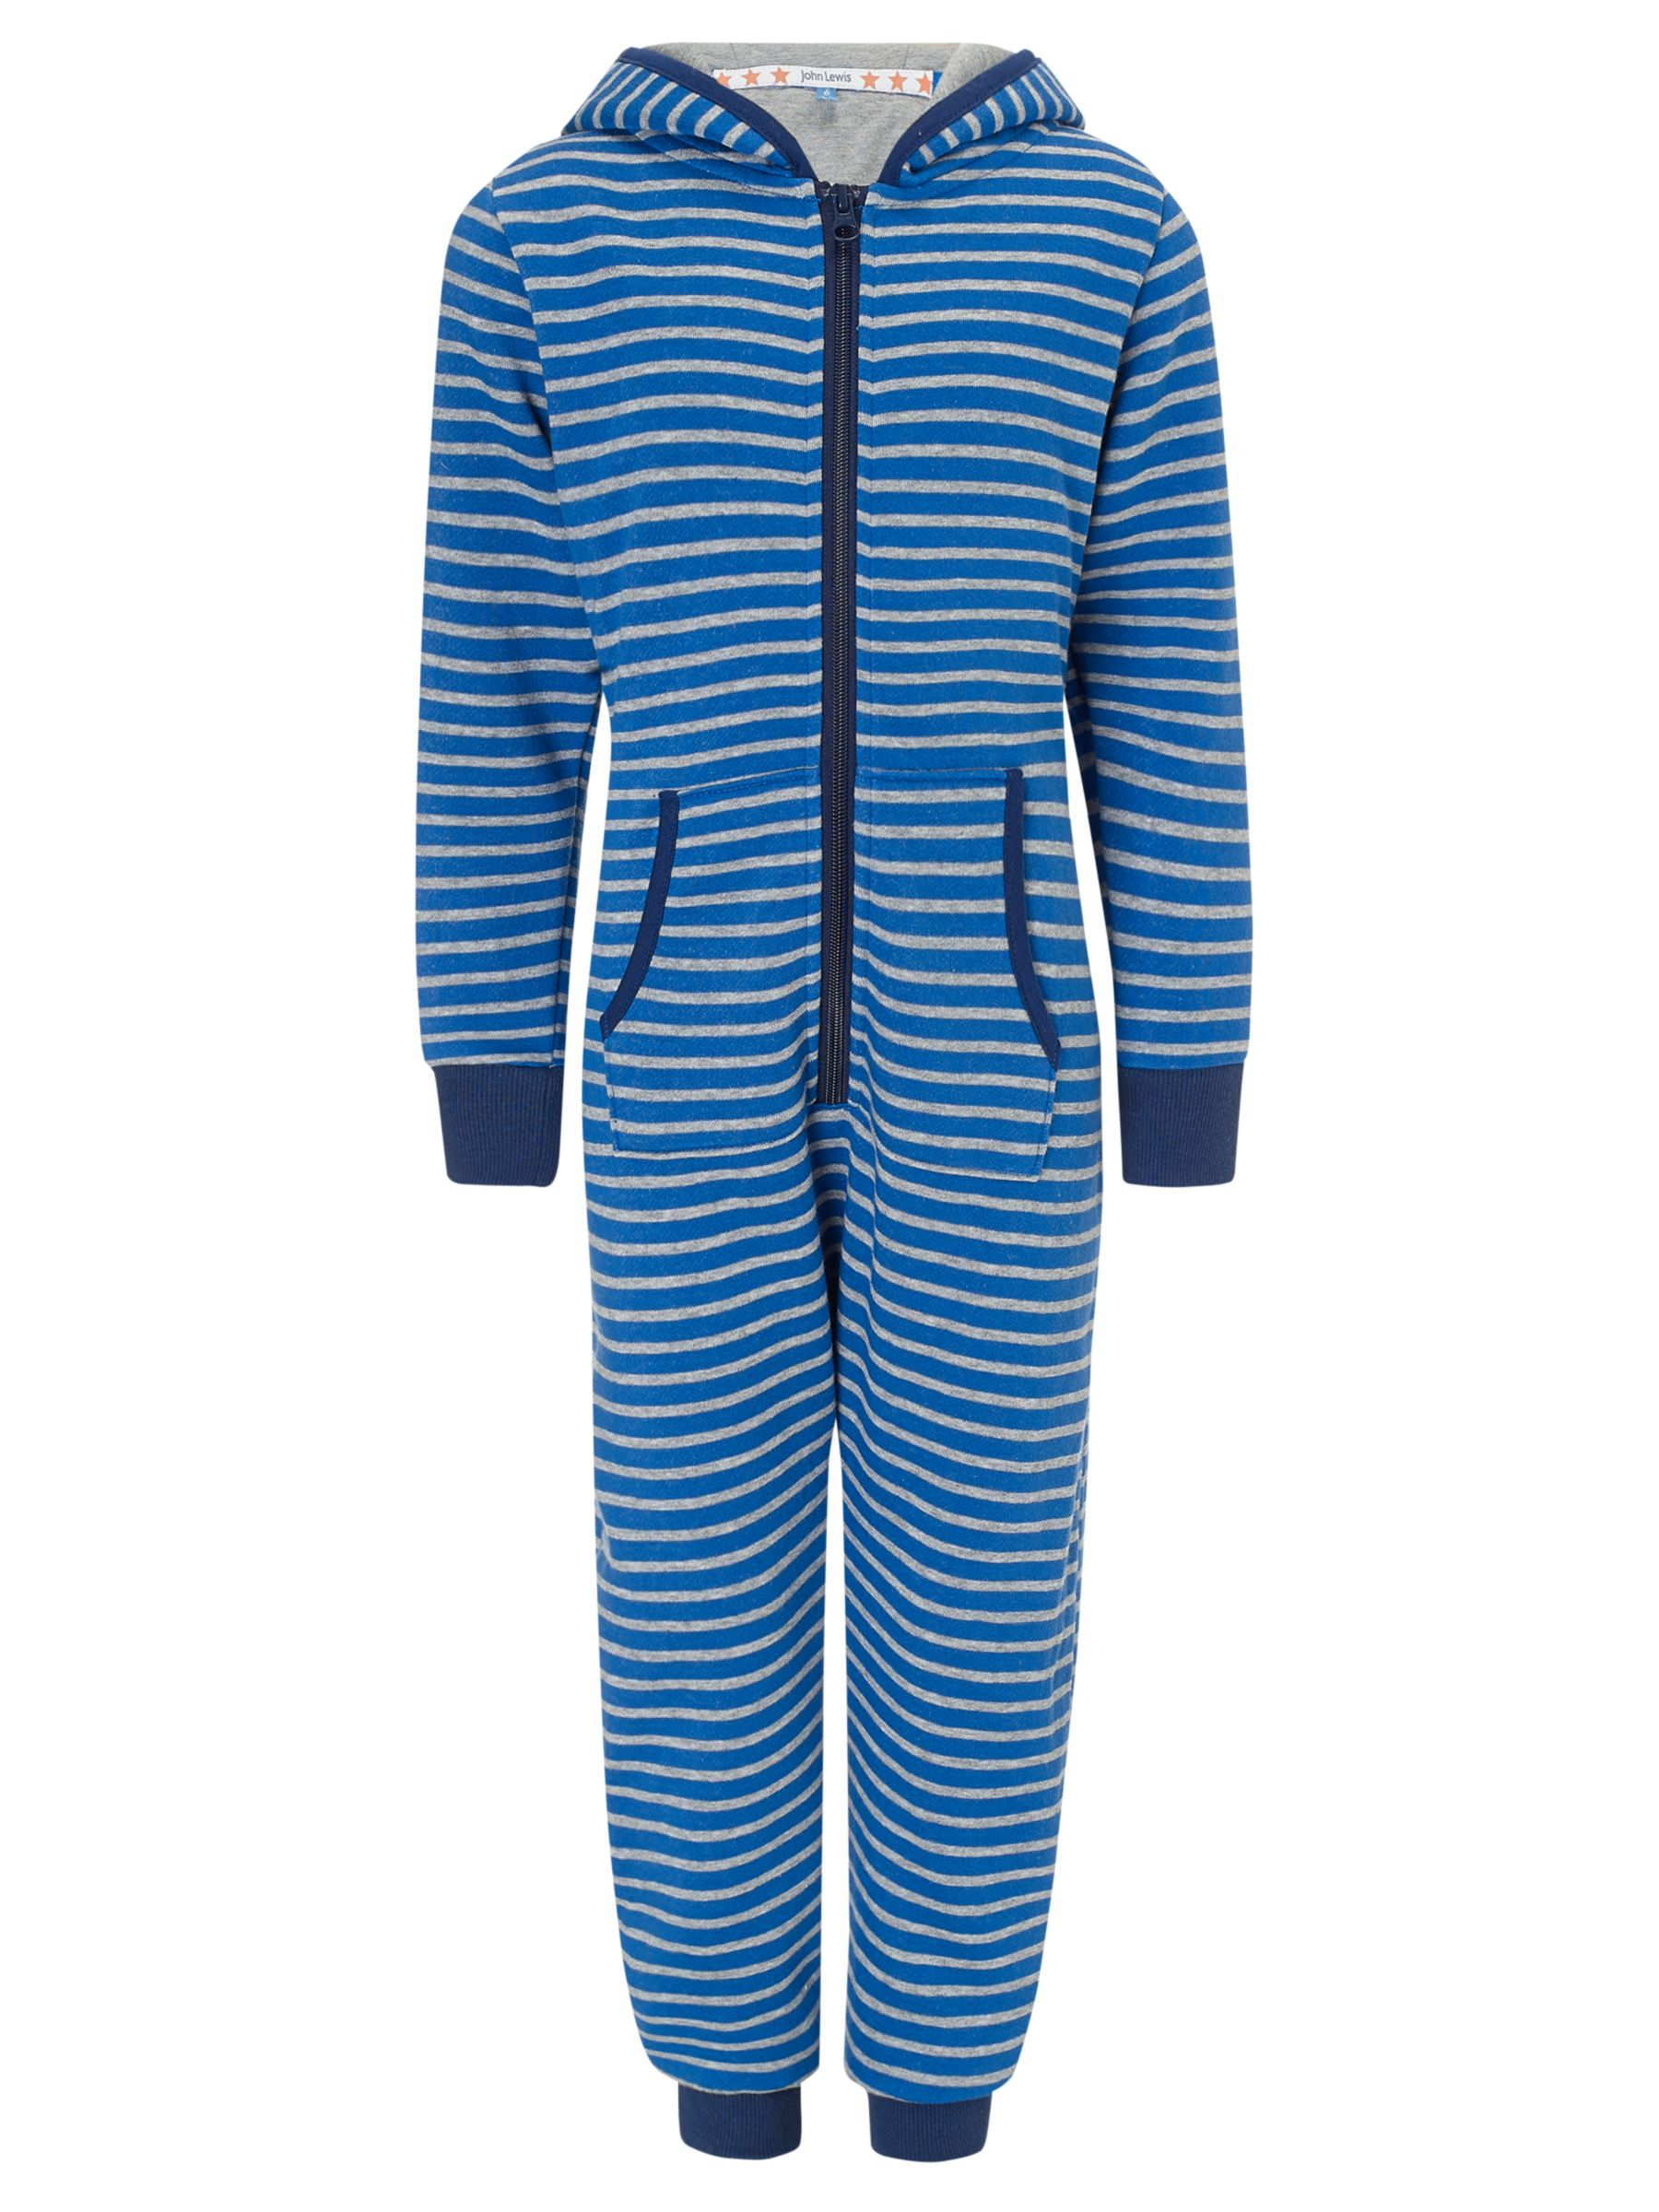 John Lewis Boy Striped Hooded Onesie, Blue/Grey